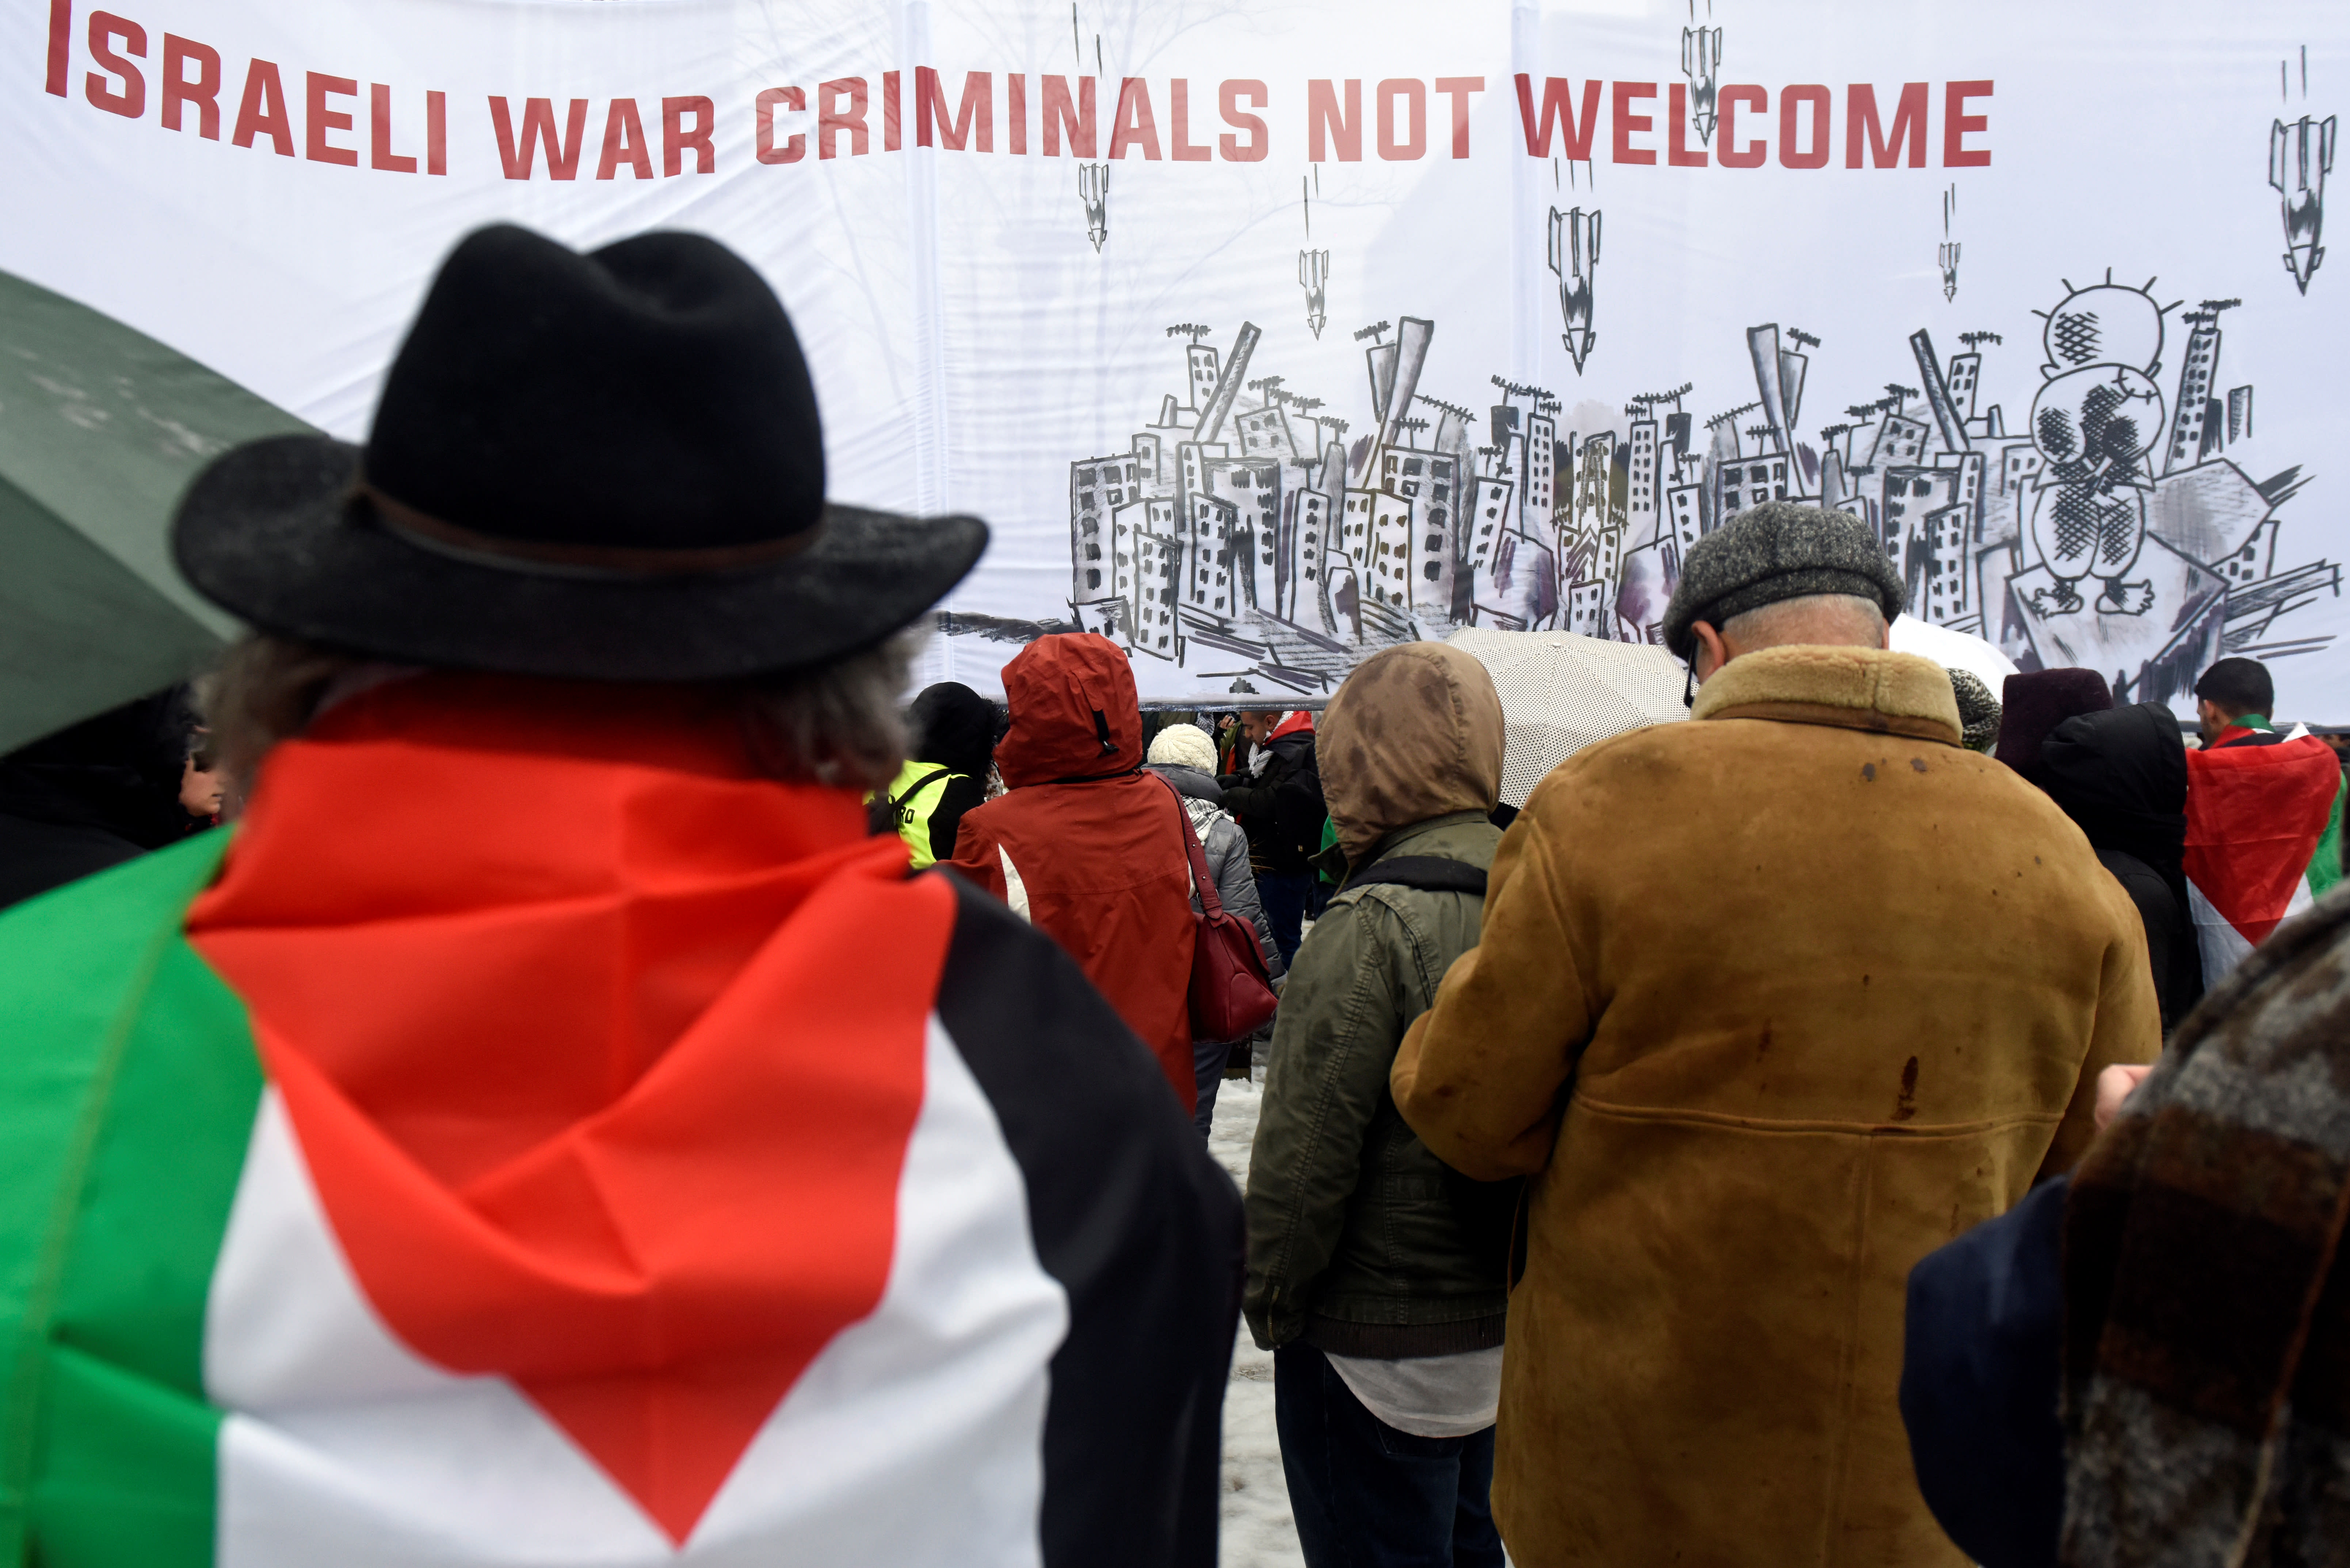 People protest against US President Donald  Trupm's recognition of Jerusalem as Israel's capital in Brussels, Belgium December 11, 2017. (REUTERS/ERIC VIDAL)